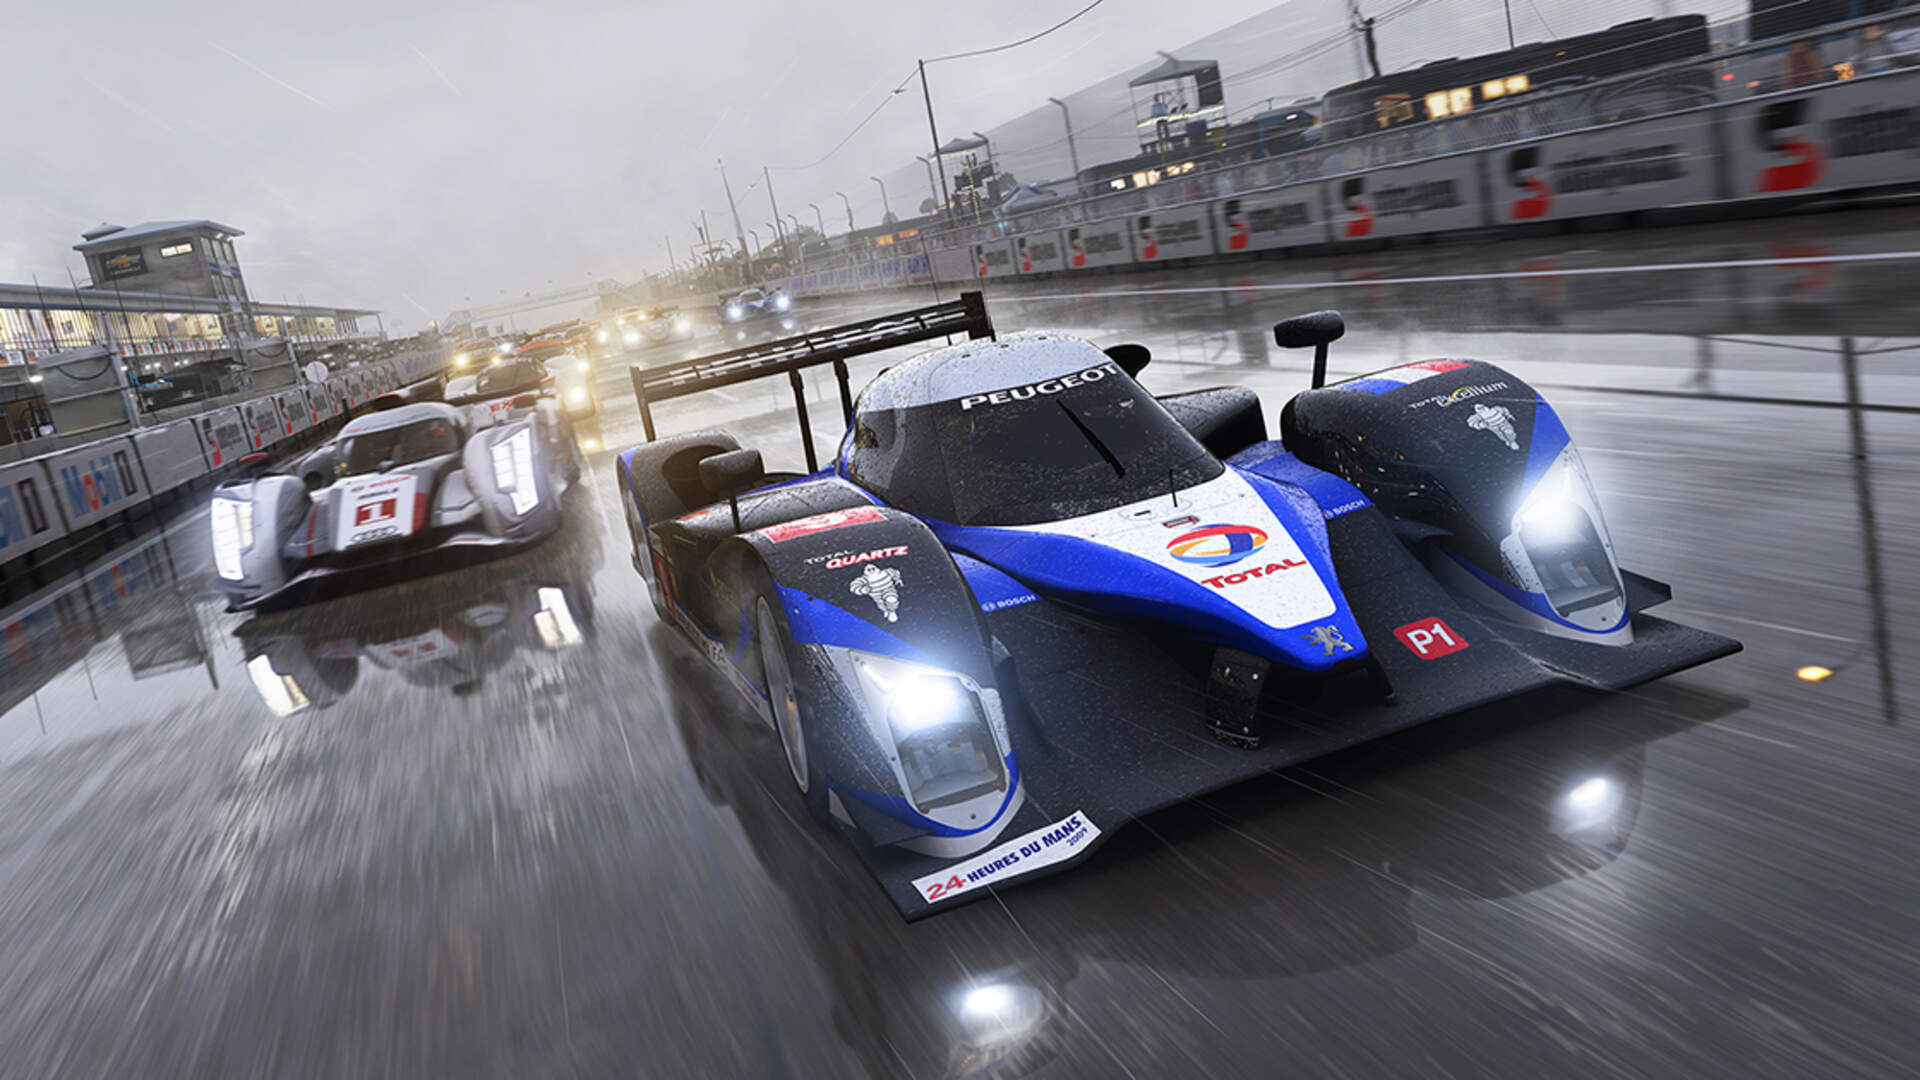 Forza Motorsport 7 - Release Date, Trailer, Cars, Tracks, Features, Time of Day, Weather, Xbox One X - Everything We Know